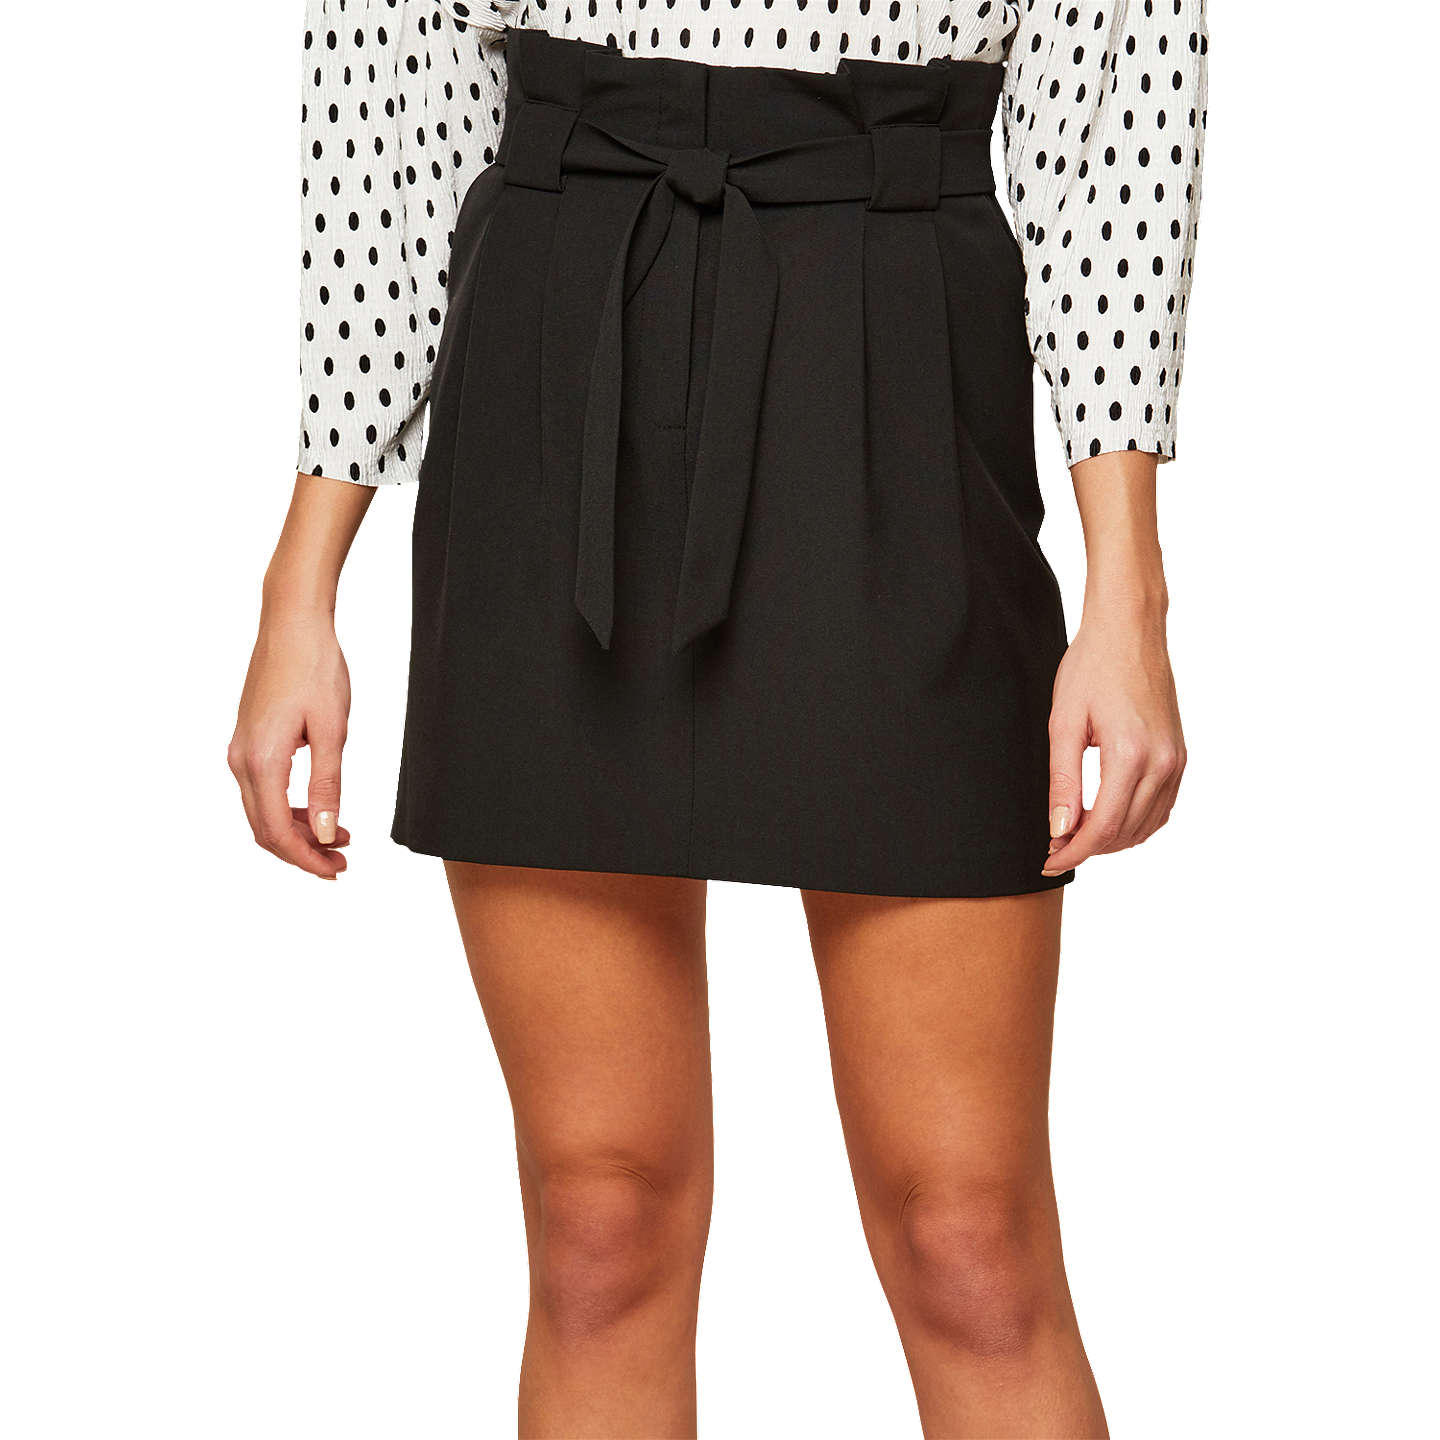 Miss Selfridge Paper Bag Skirt, Black at John Lewis